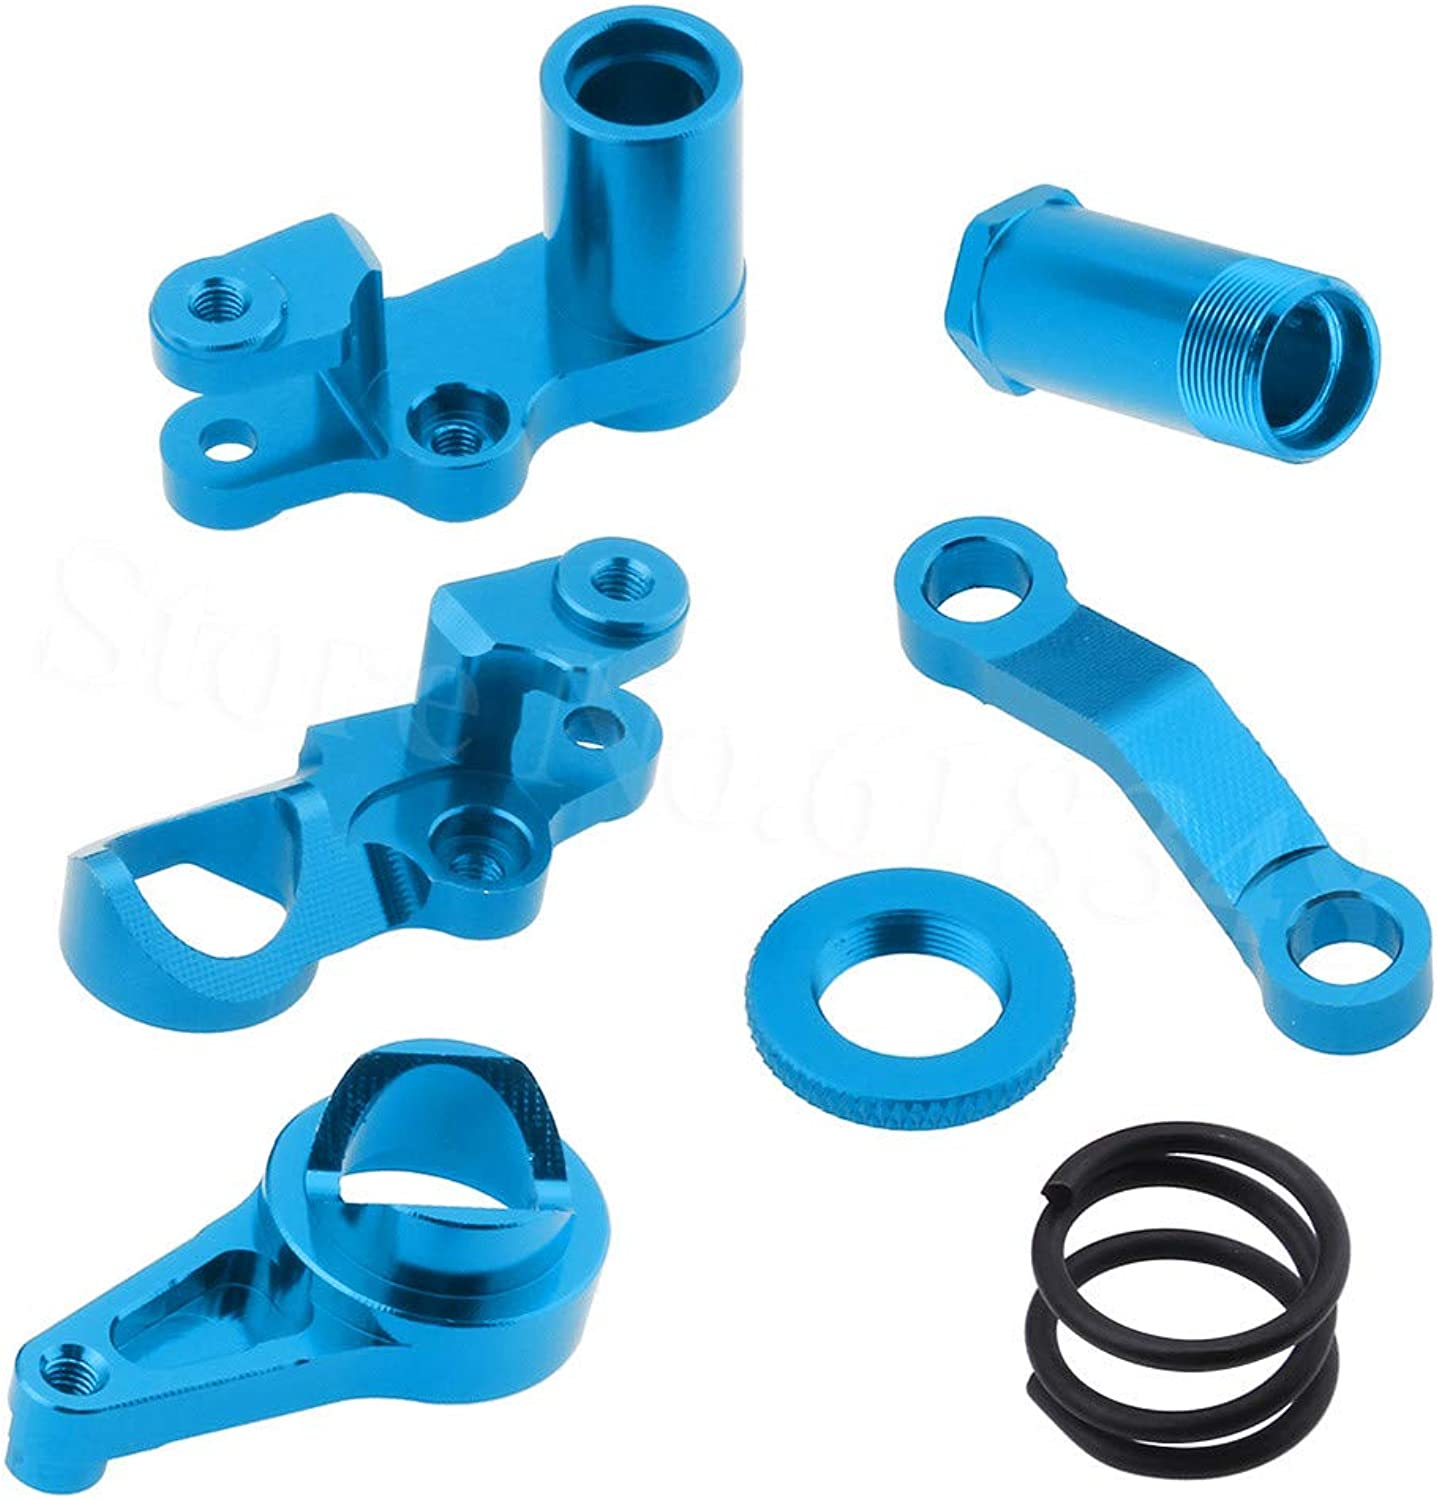 Generic for Traxxas Slash 4x4 Option Upgrade Parts Parts